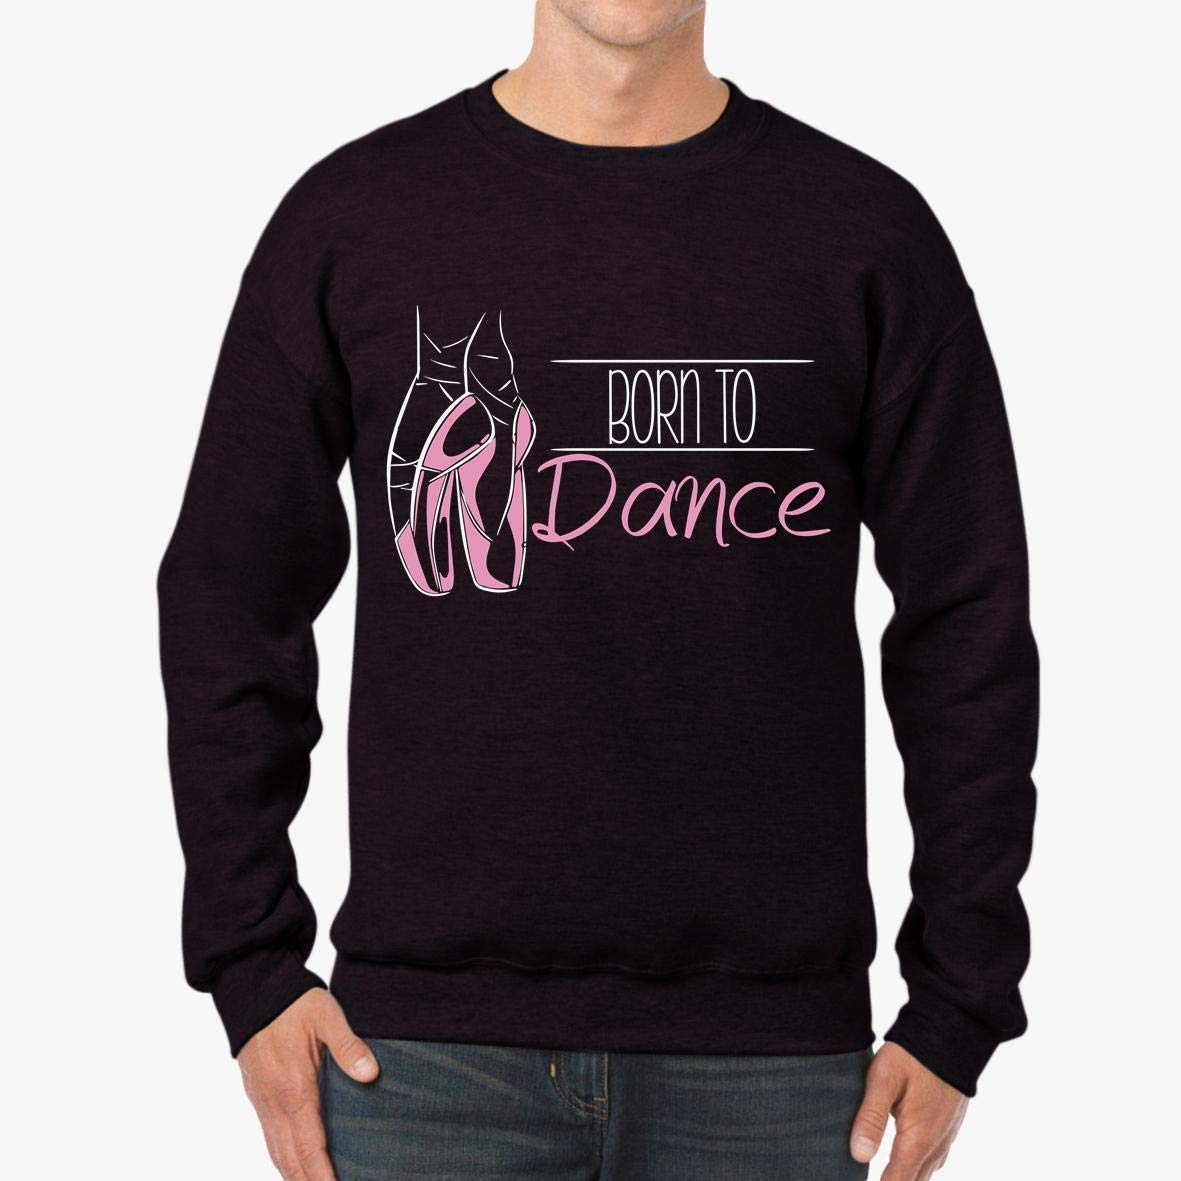 Born to Dance Unisex Sweatshirt tee